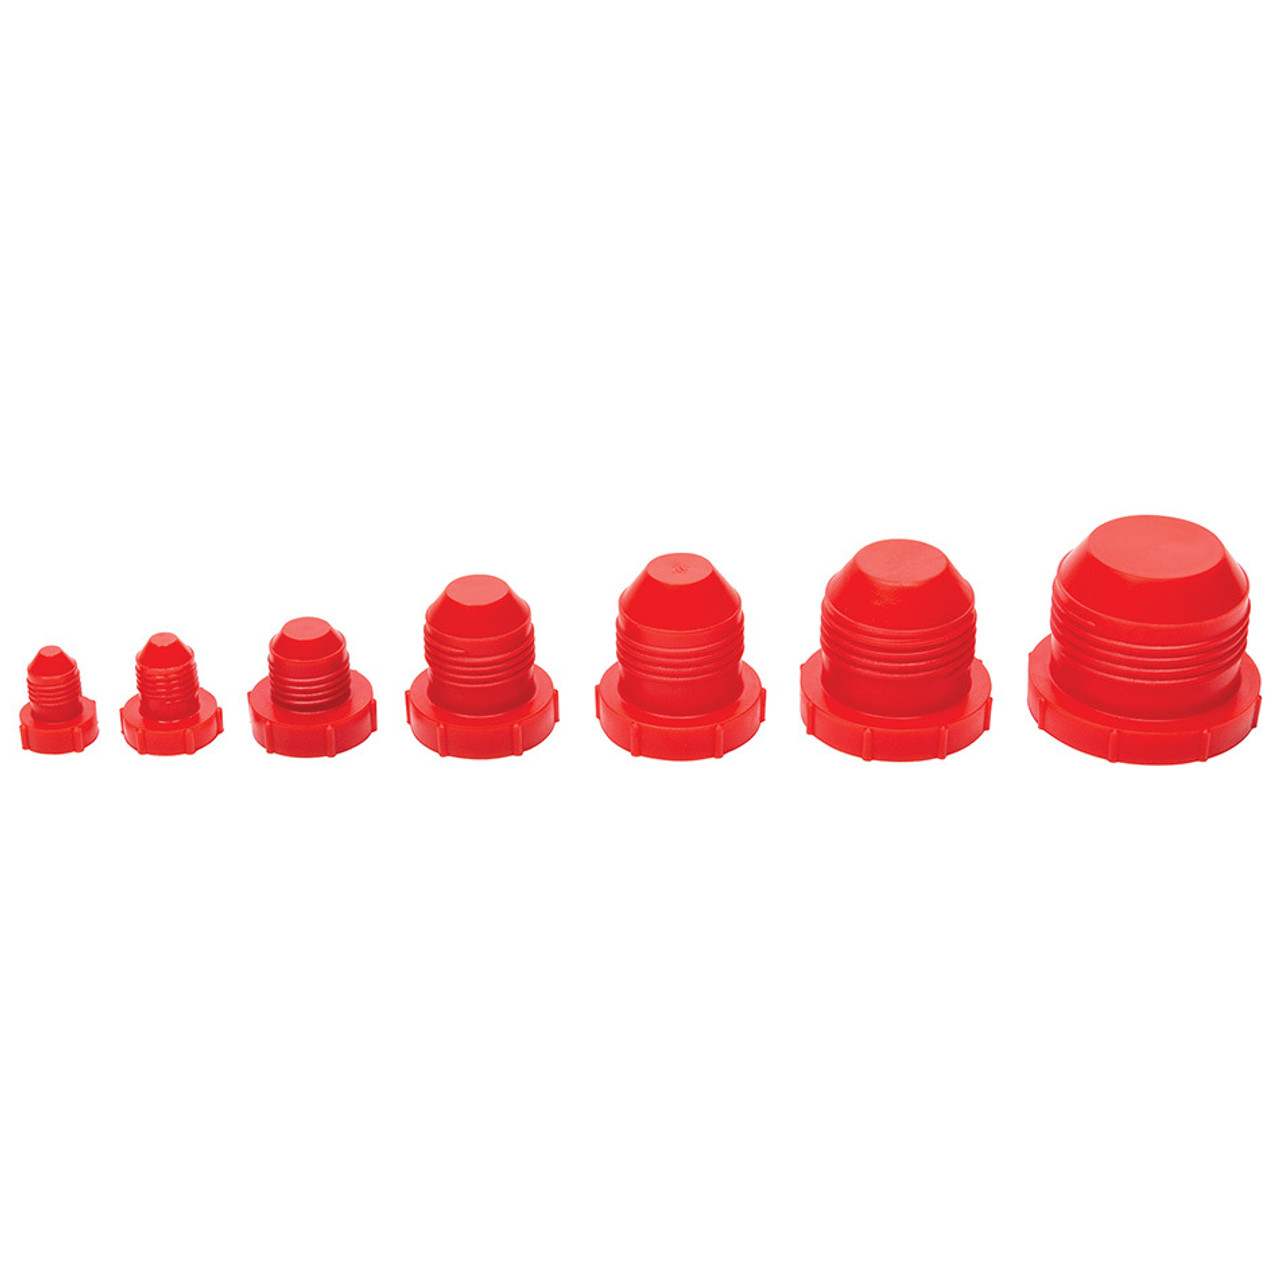 Allstar ALL50800 Red Plastic Fitting Cap Kit